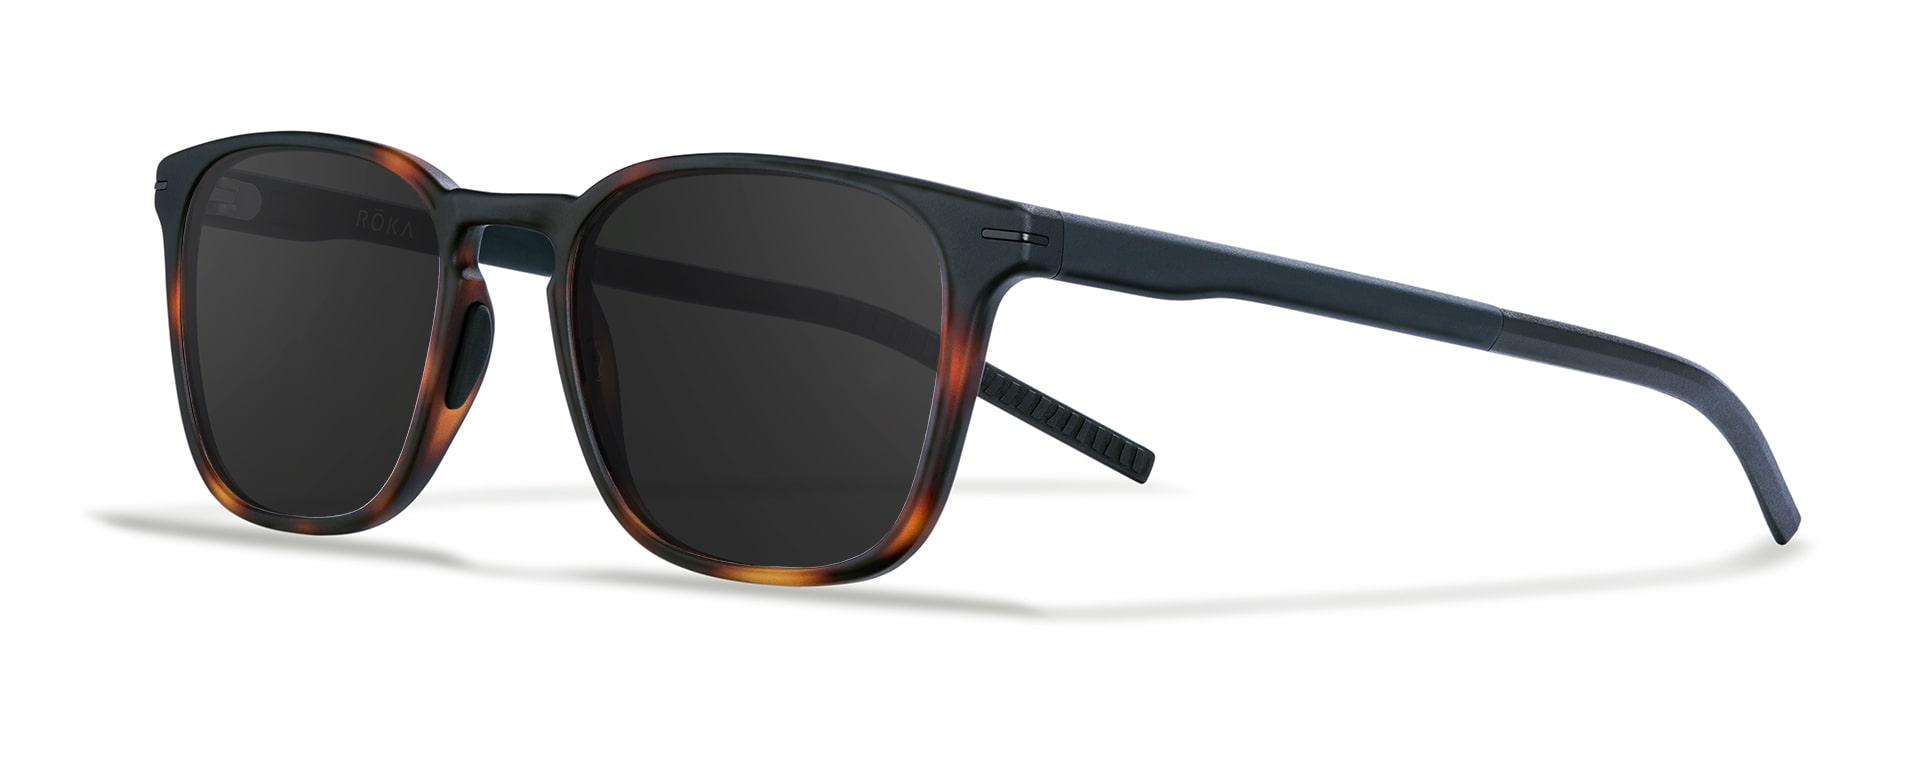 Three-quarter view of the Rory tortoise frame with a dark carbon lens.